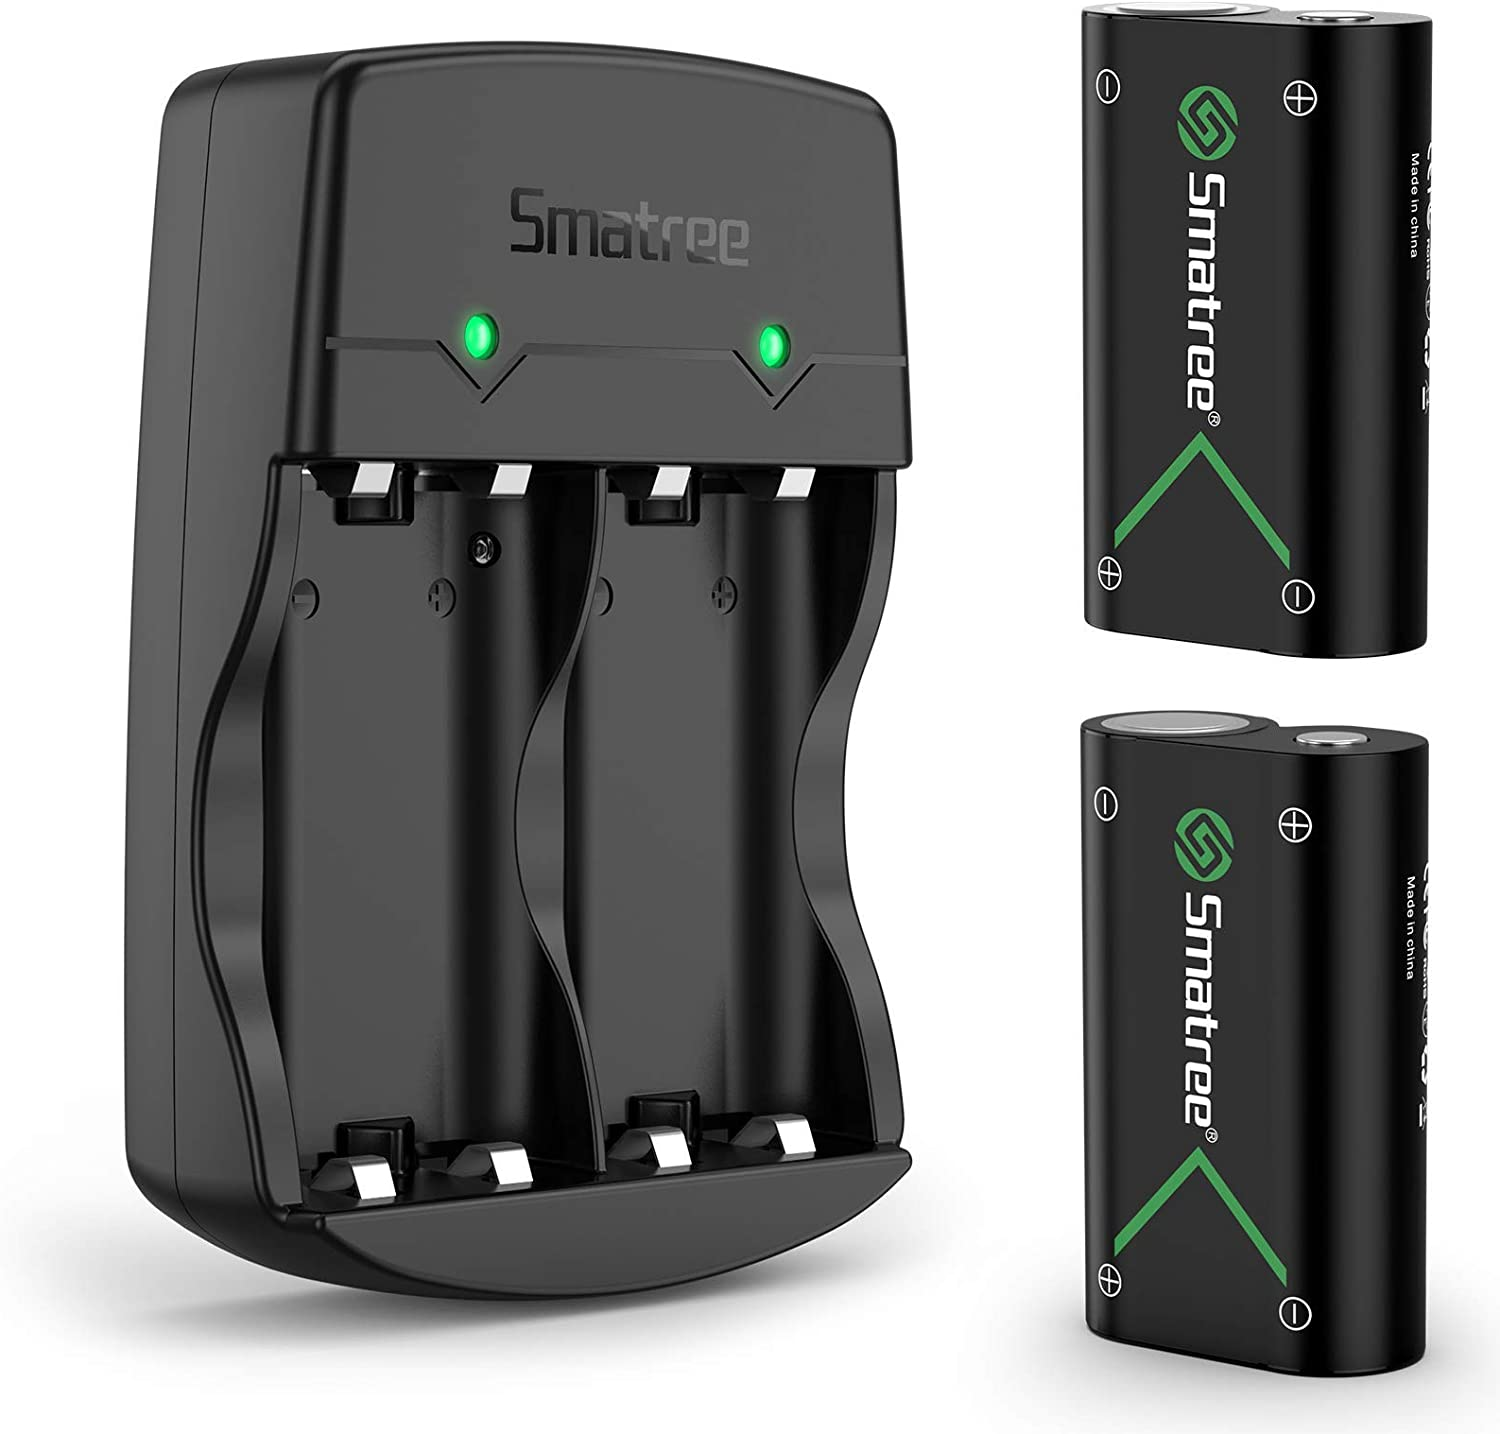 Smatree Rechargeable Battery Compatible for Xbox One/Xbox One S/Xbox One X/Xbox One Elite Wireless Controller, 2 Pack Batteries with Charger